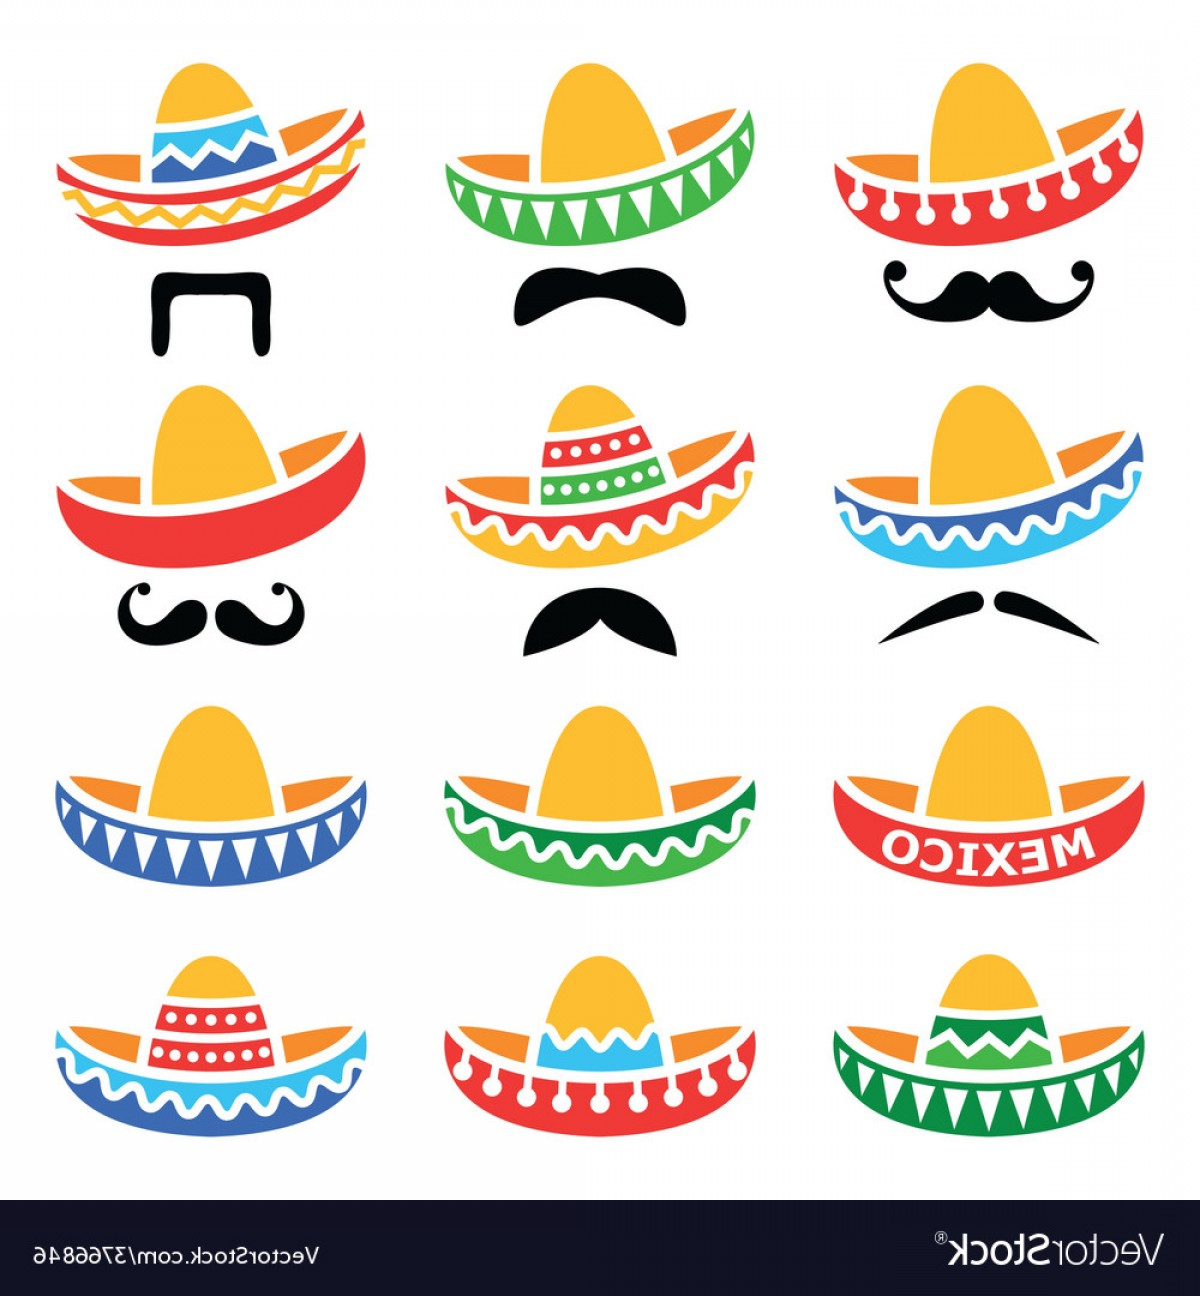 Sombrero Hat Vector: Mexican Sombrero Hat With Moustache Or Mustache Vector